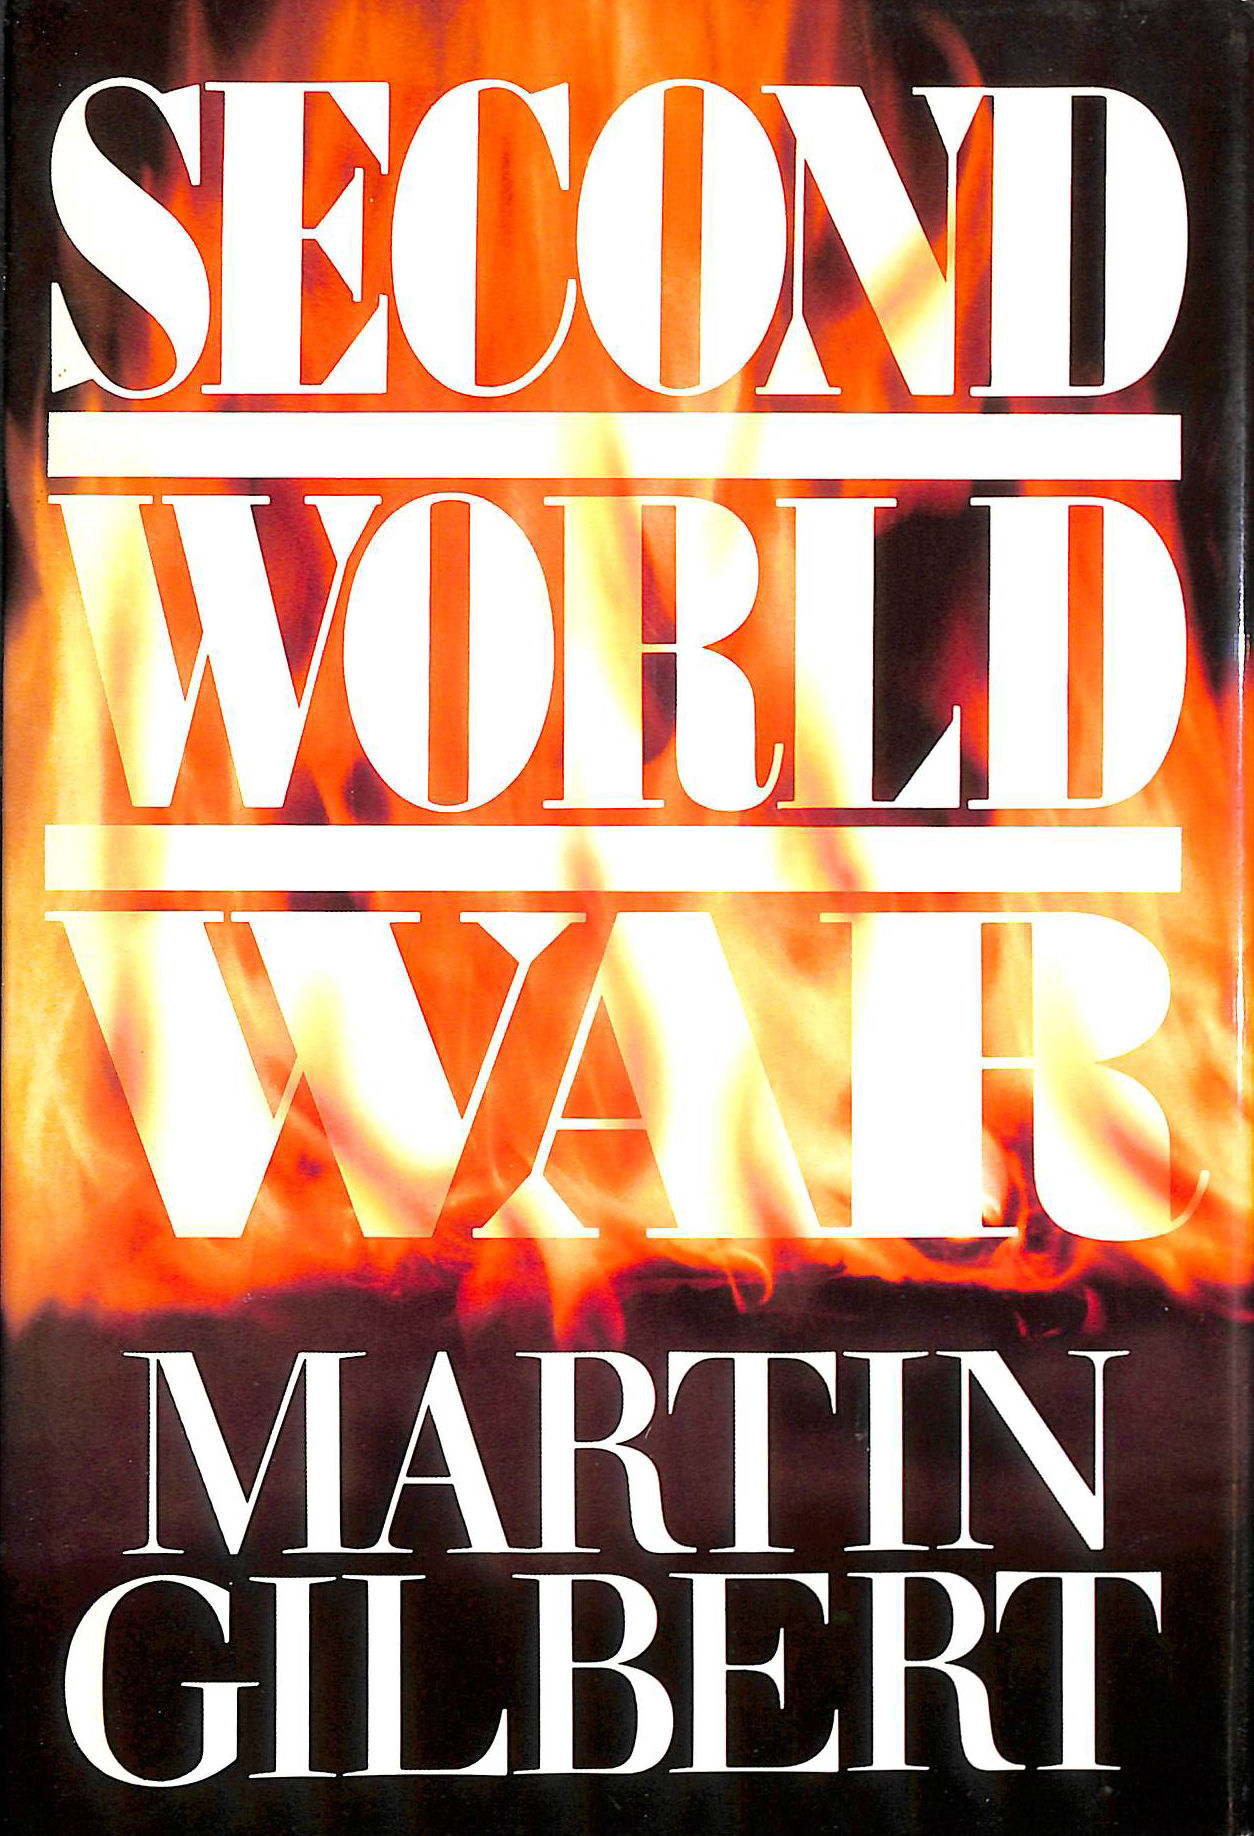 Image for By Martin Gilbert - Second World War